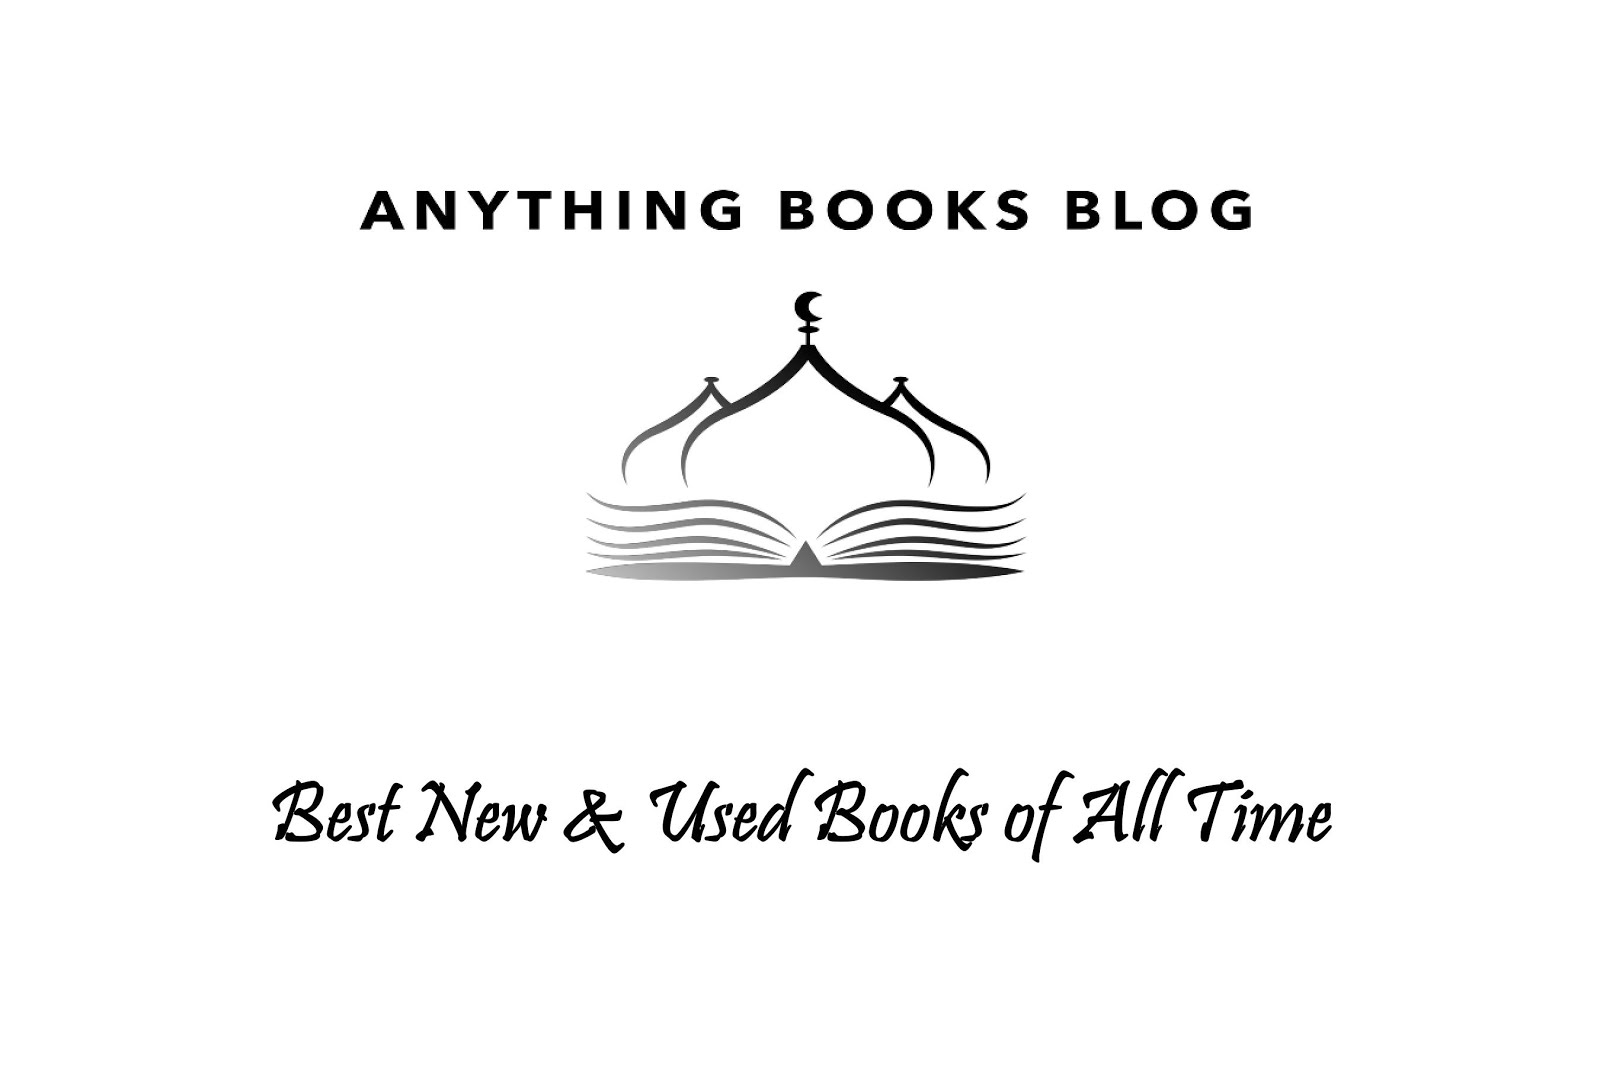 blog.anythingbooks.com